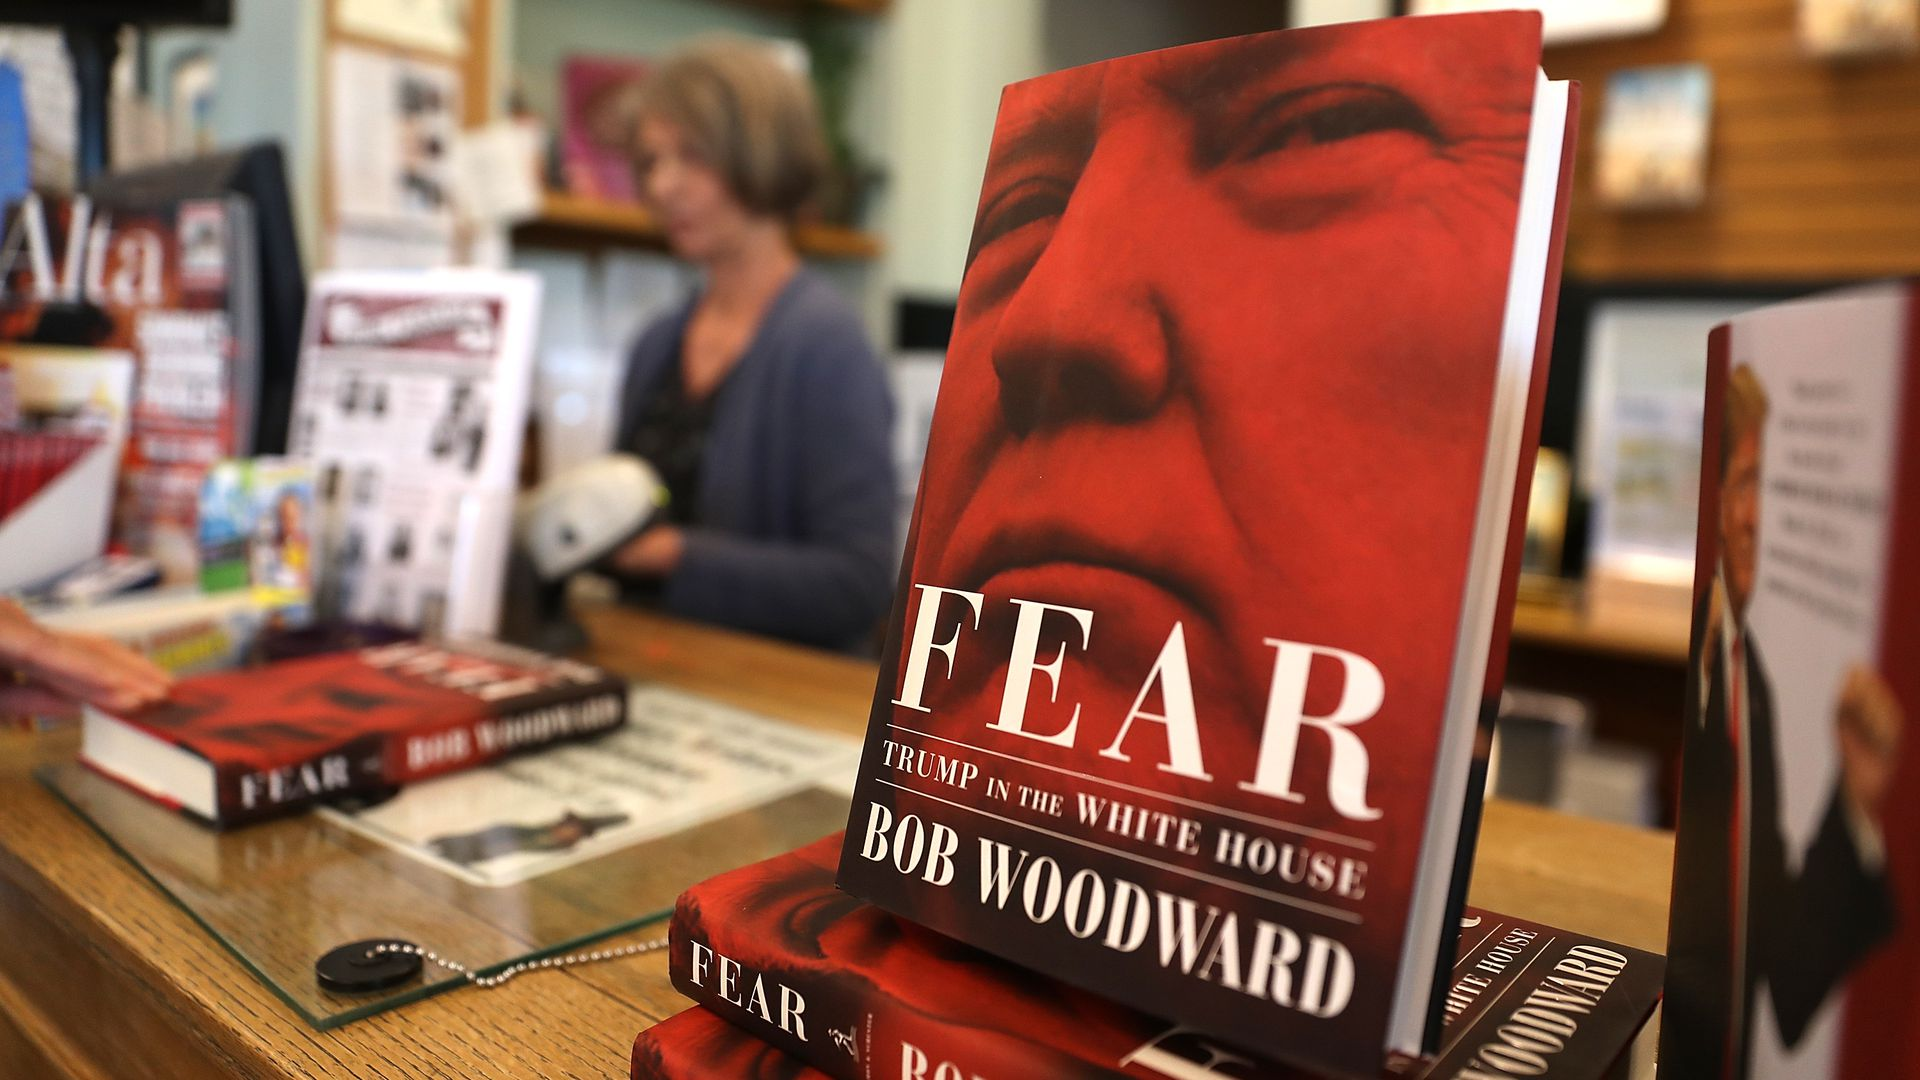 A copy of Bob Woodward's book at a book store.